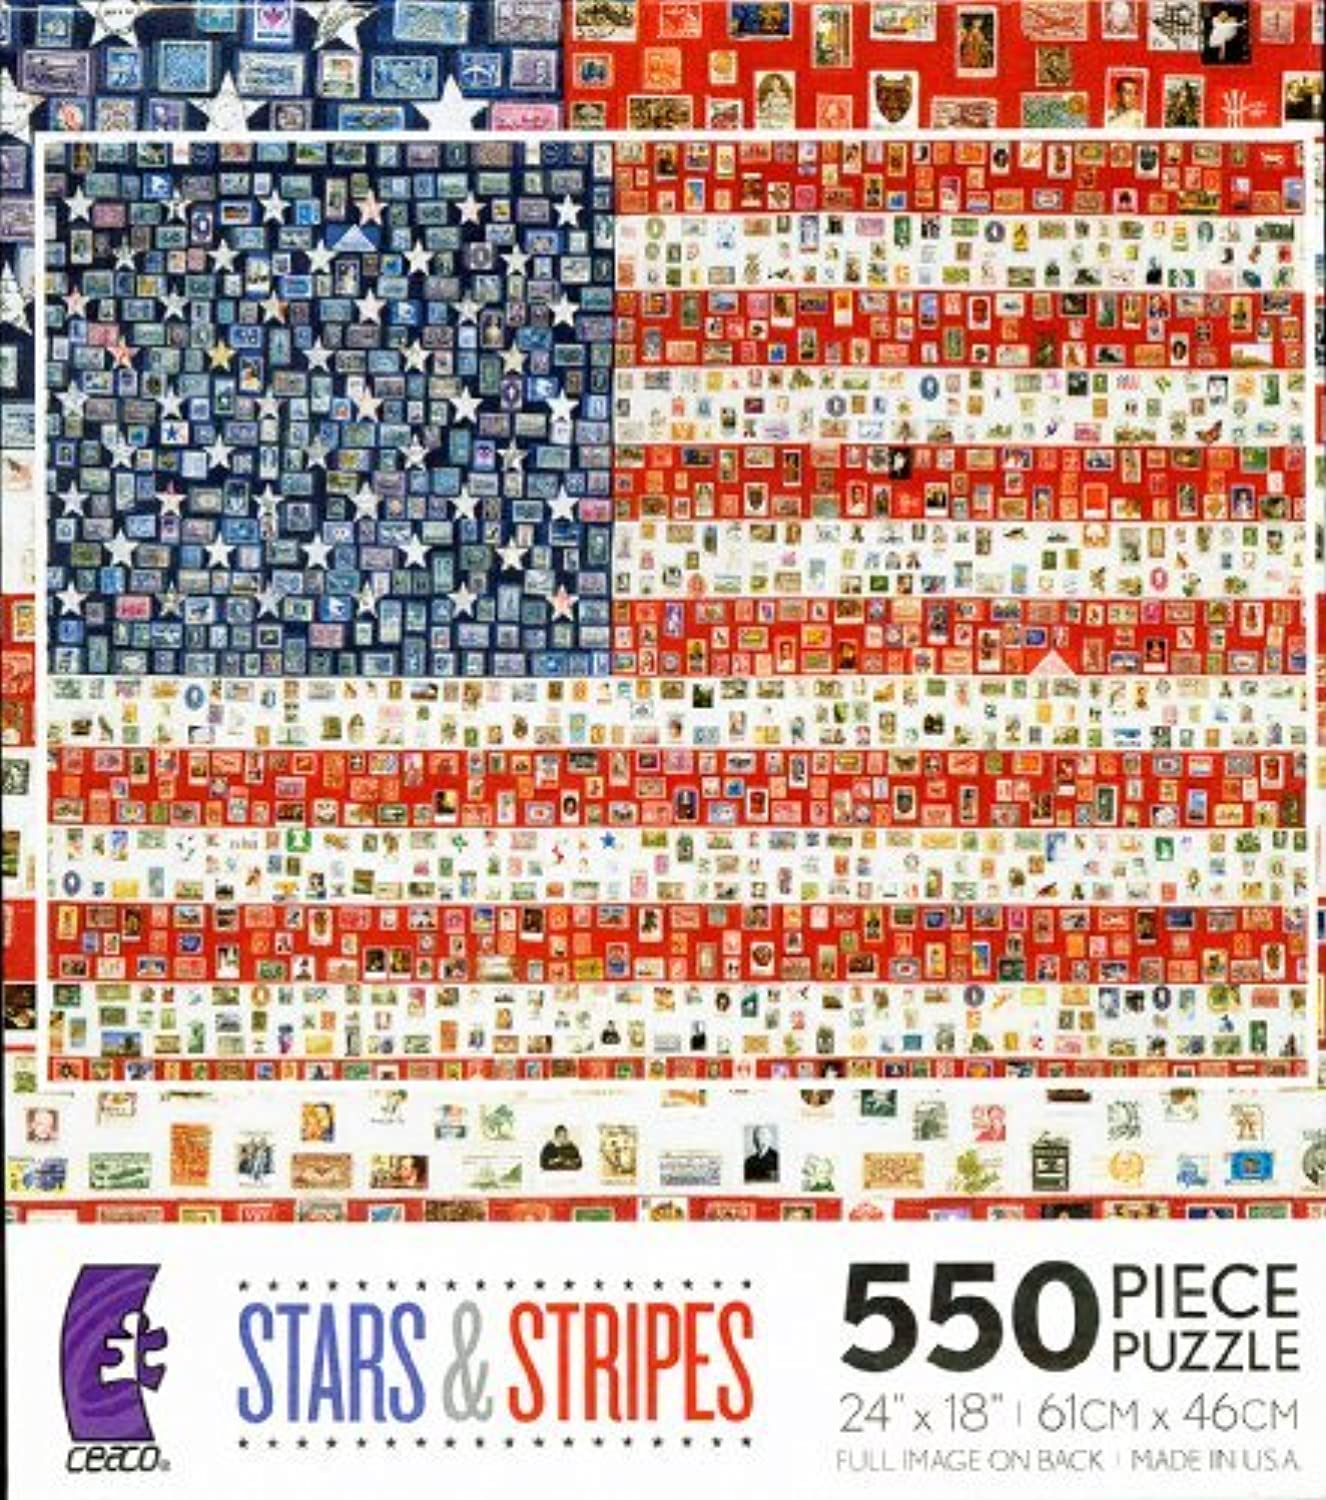 Campaign Button Flag 550 Piece Jigsaw Puzzle by Ceaco